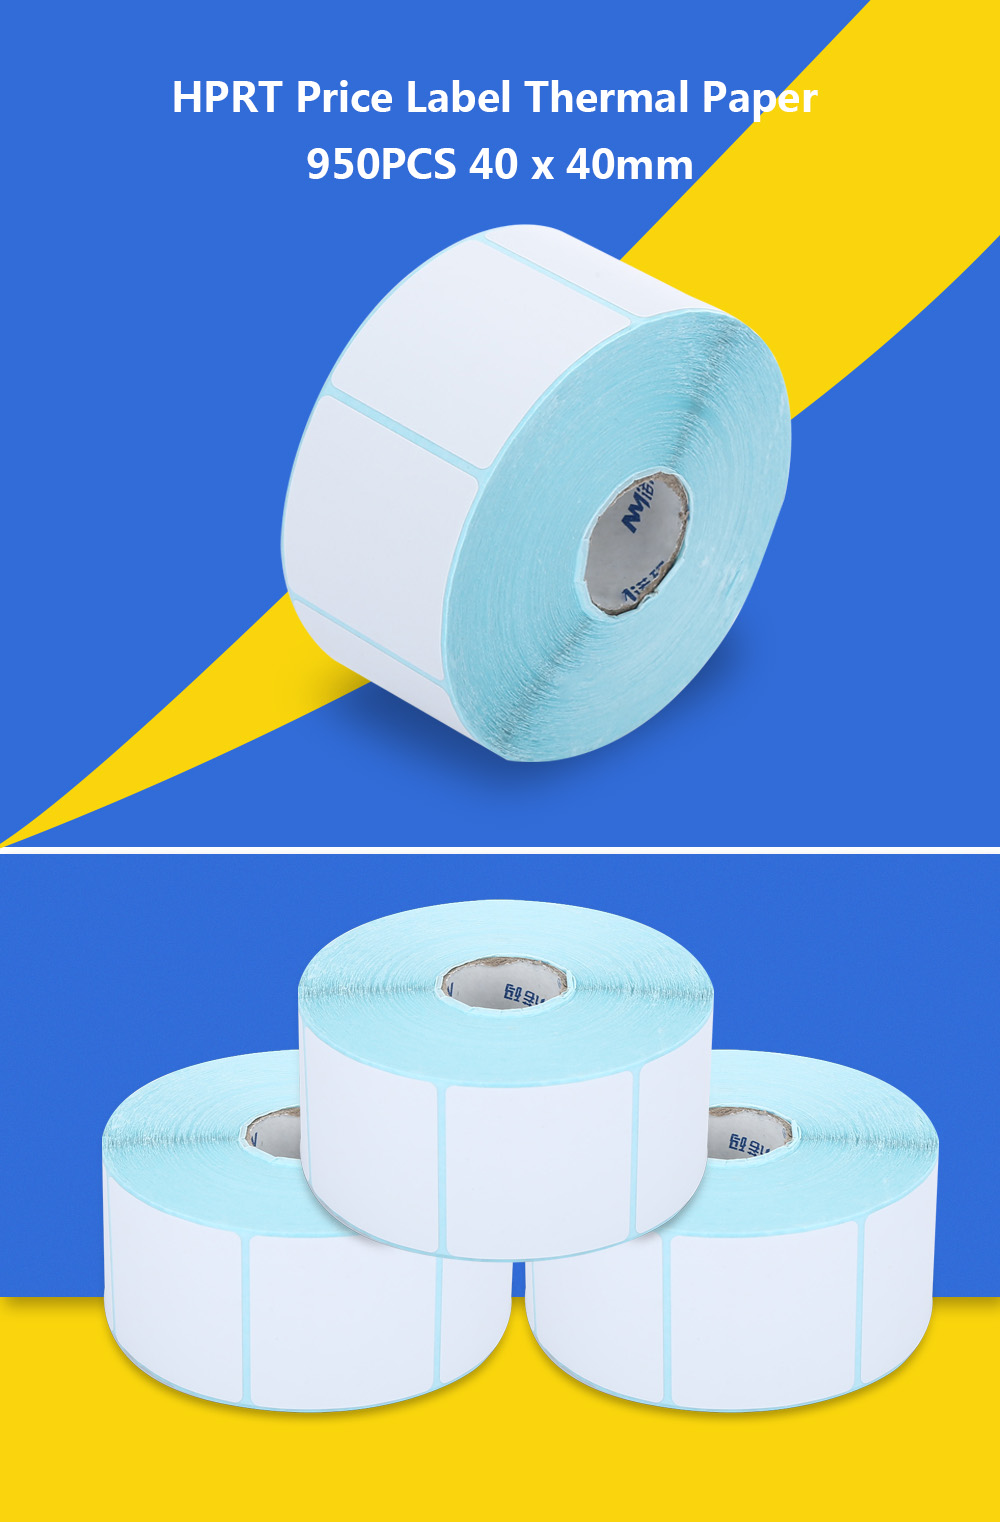 HPRT Thermal Label Paper Sticker Price Roll 950PCS 40 x 40mm